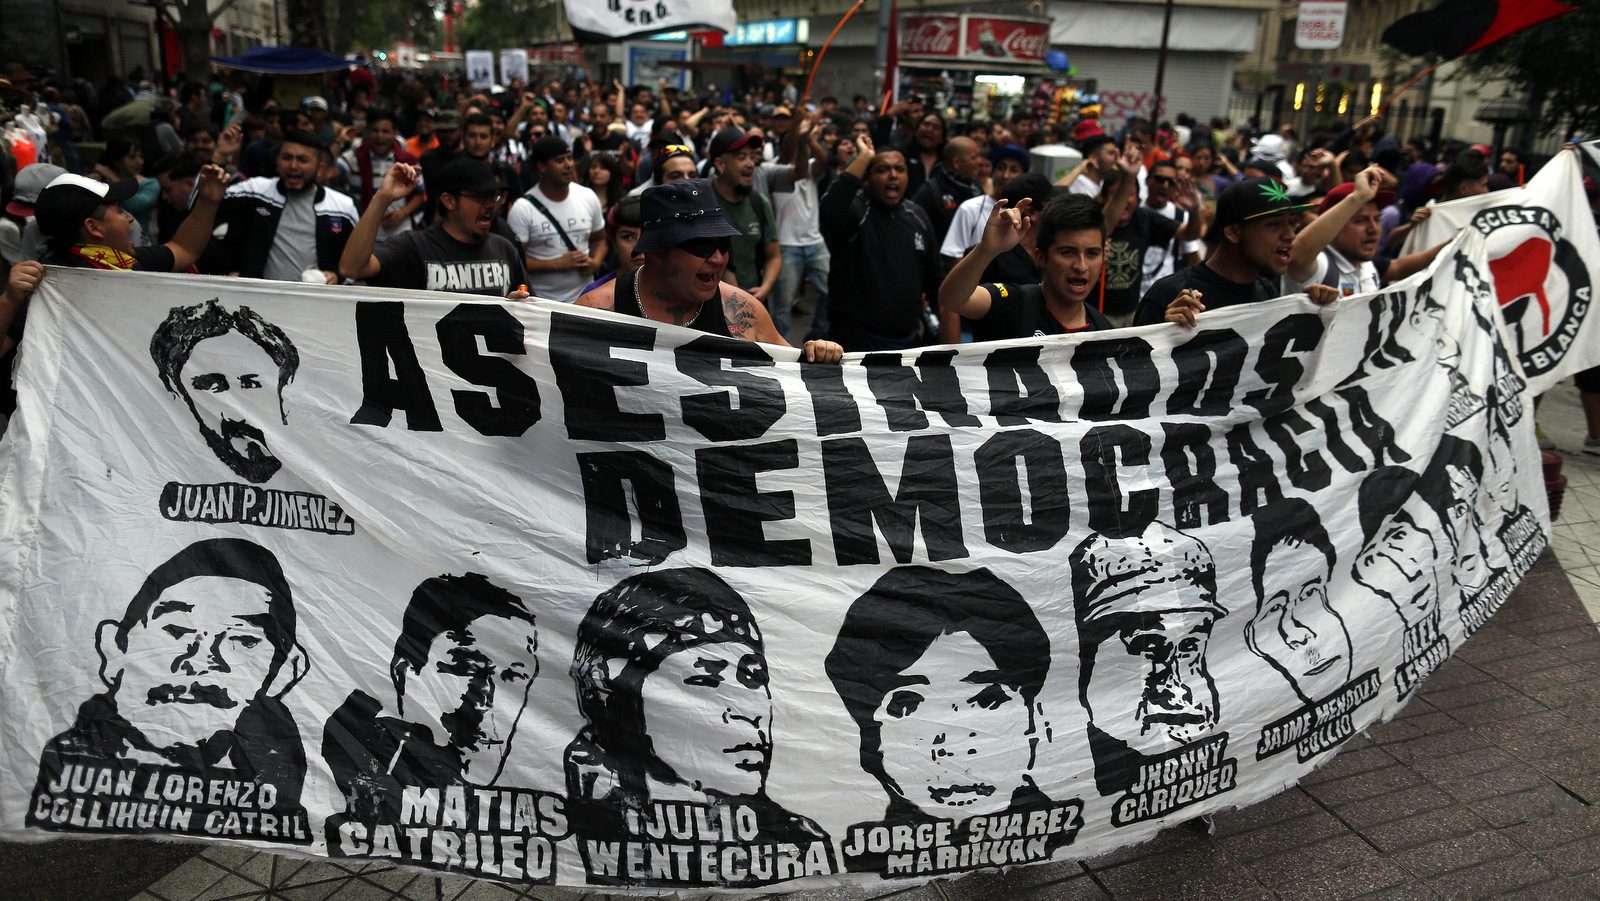 Protesters commemorate the eighth year anniversary of the police killing of Mapuche indigenous activist Matias Catrileo in Santiago, Chile, Jan. 5, 2016, carrying a banner showing the faces of protesters who have died during Chile's democratic governments. (AP/Luis Hidalgo)